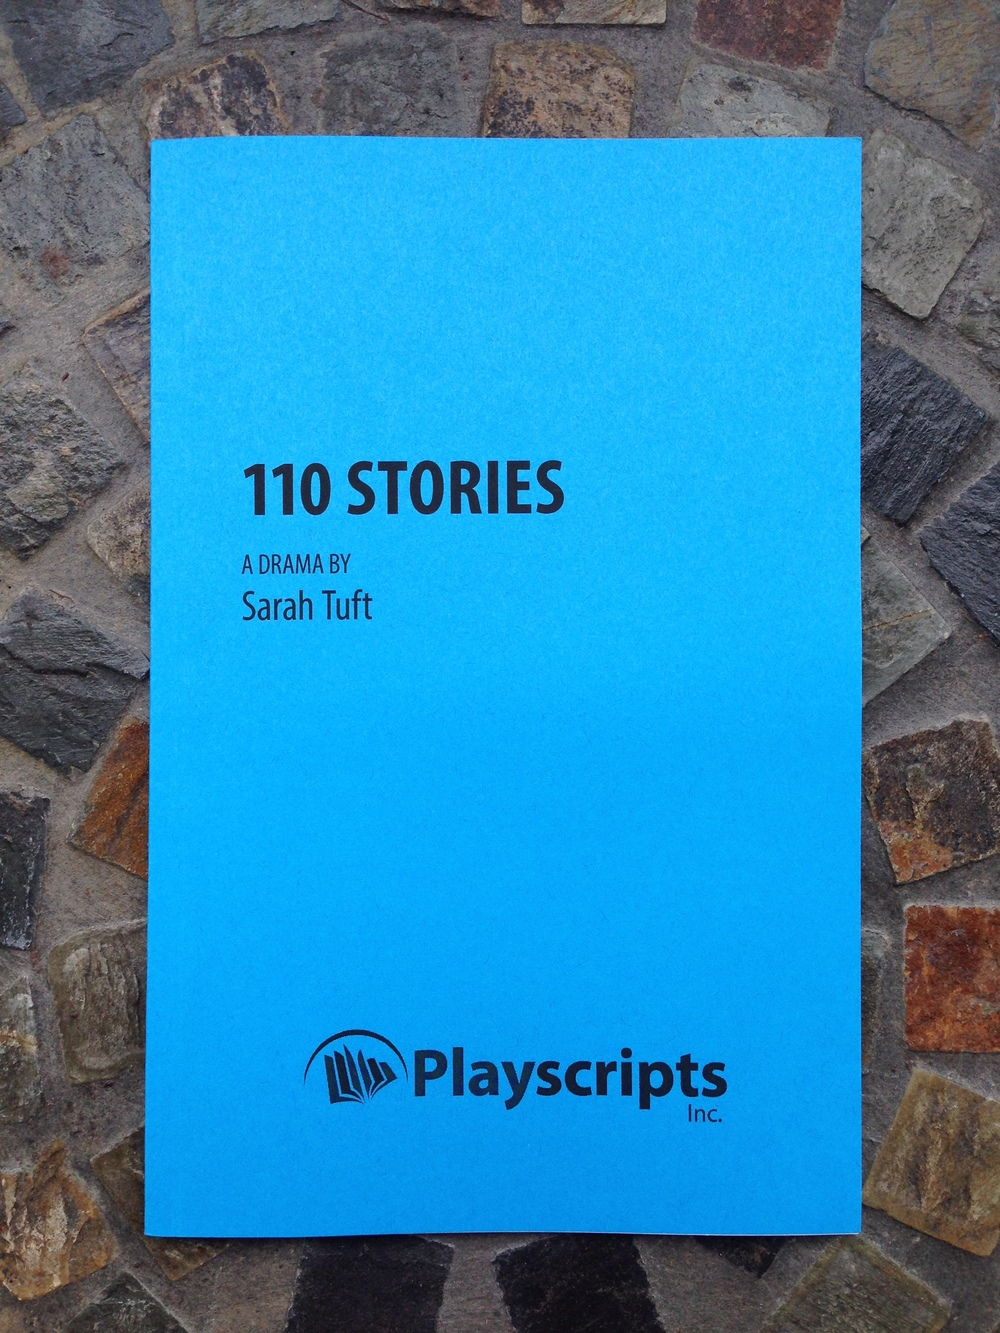 110 STORIES by Sarah Tuft book